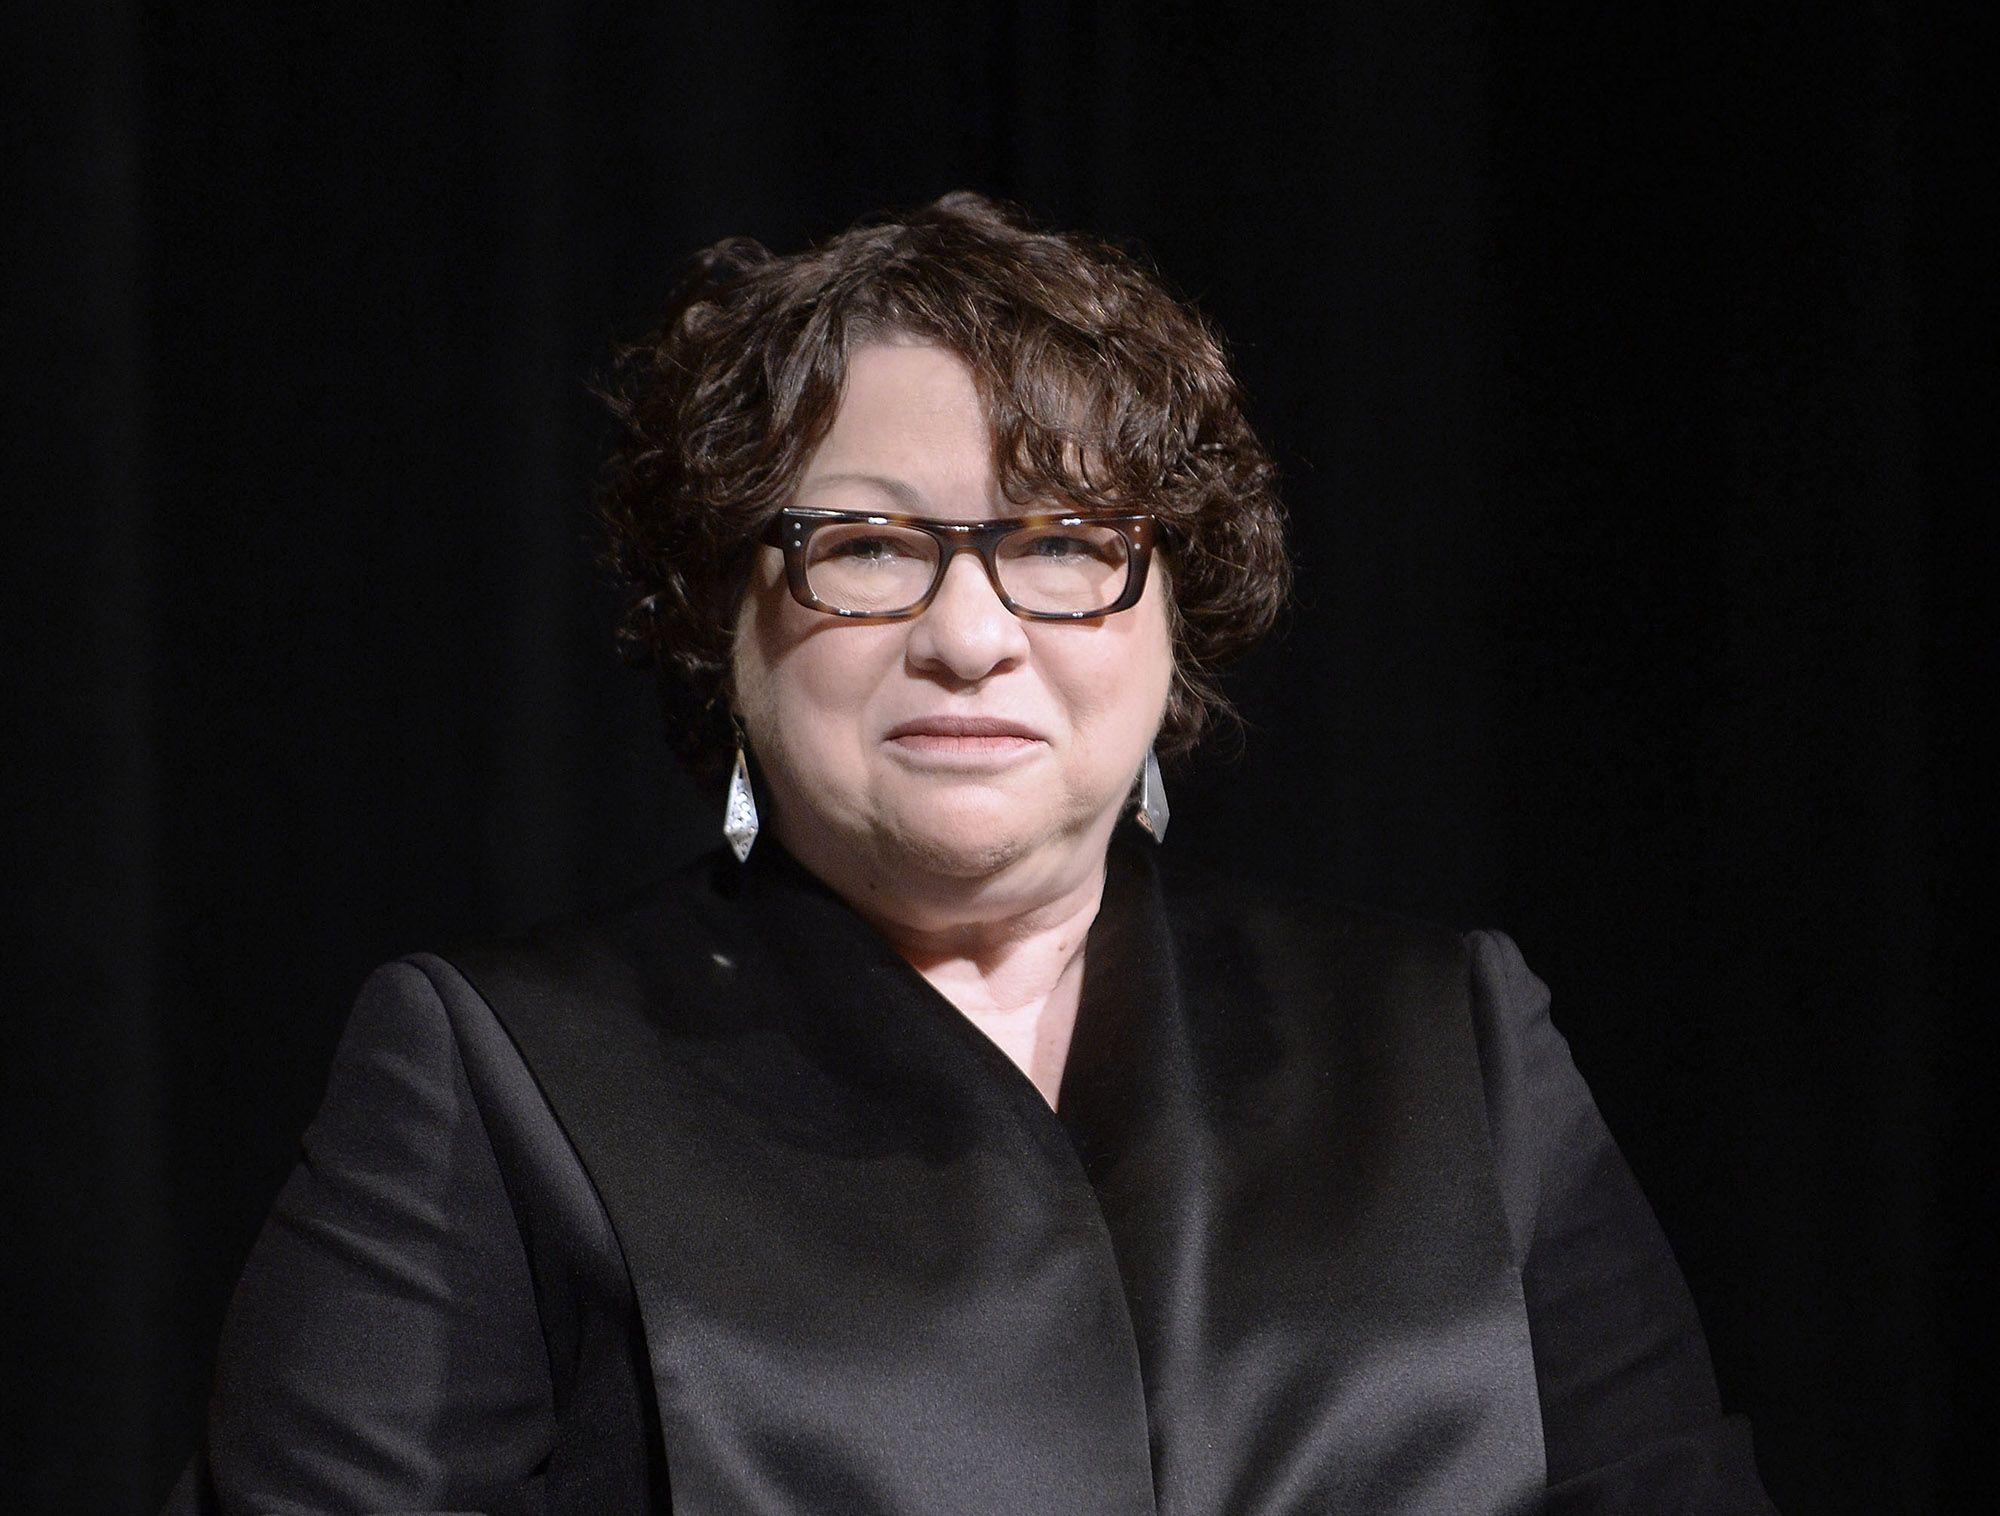 Sotomayor's Scathing 'Public Charge' Dissent Lights Up Twitter